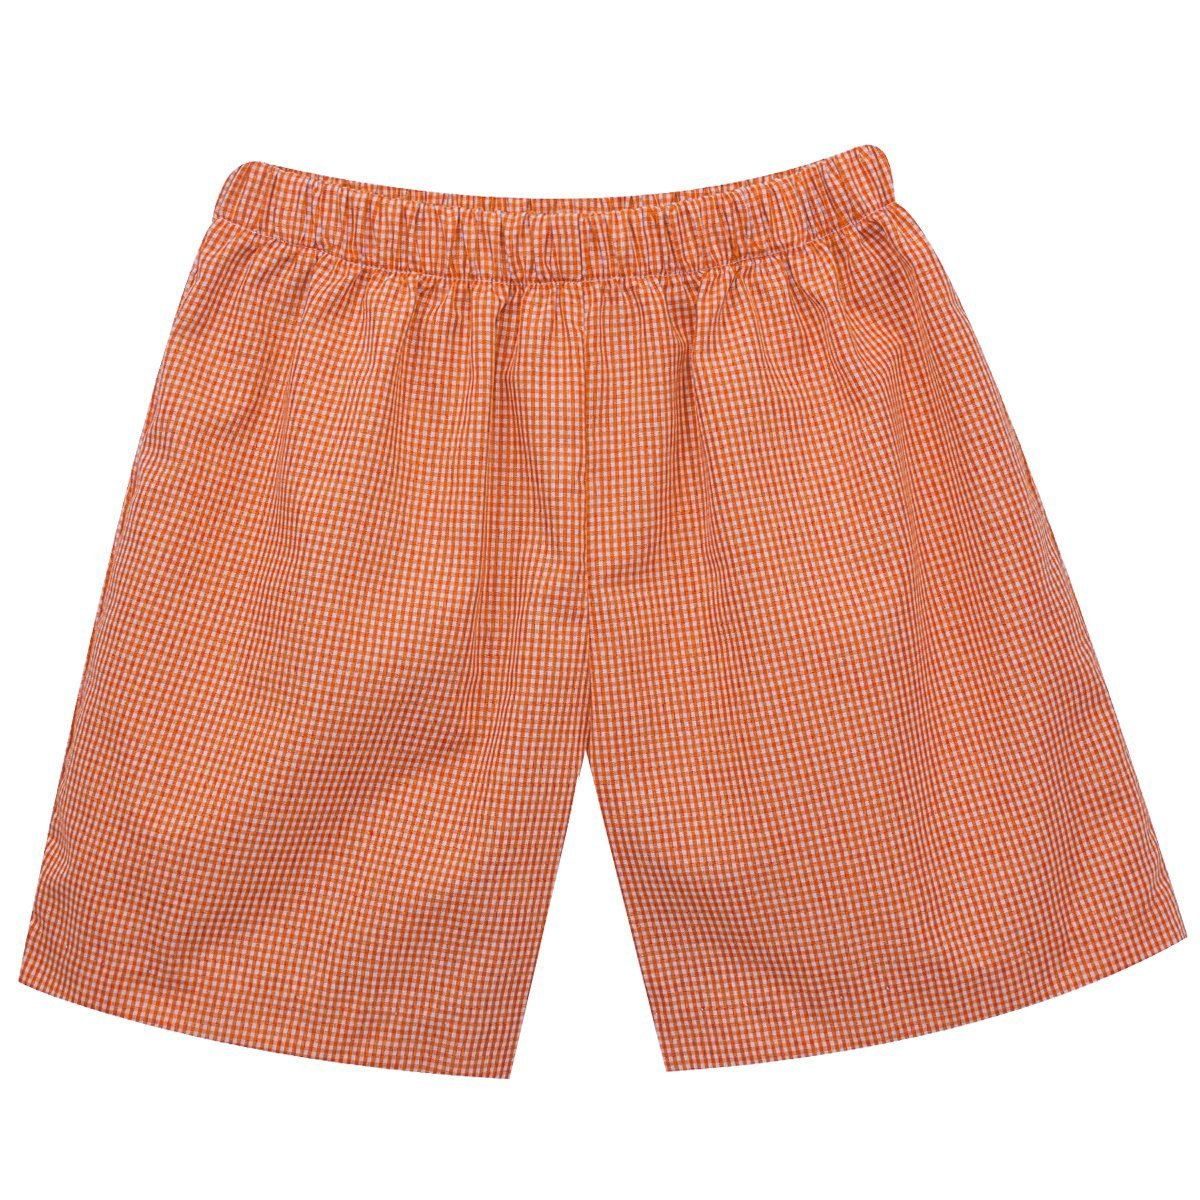 Vive La Fete Orange Check Gingham Shorts - Mr. Knickerbocker